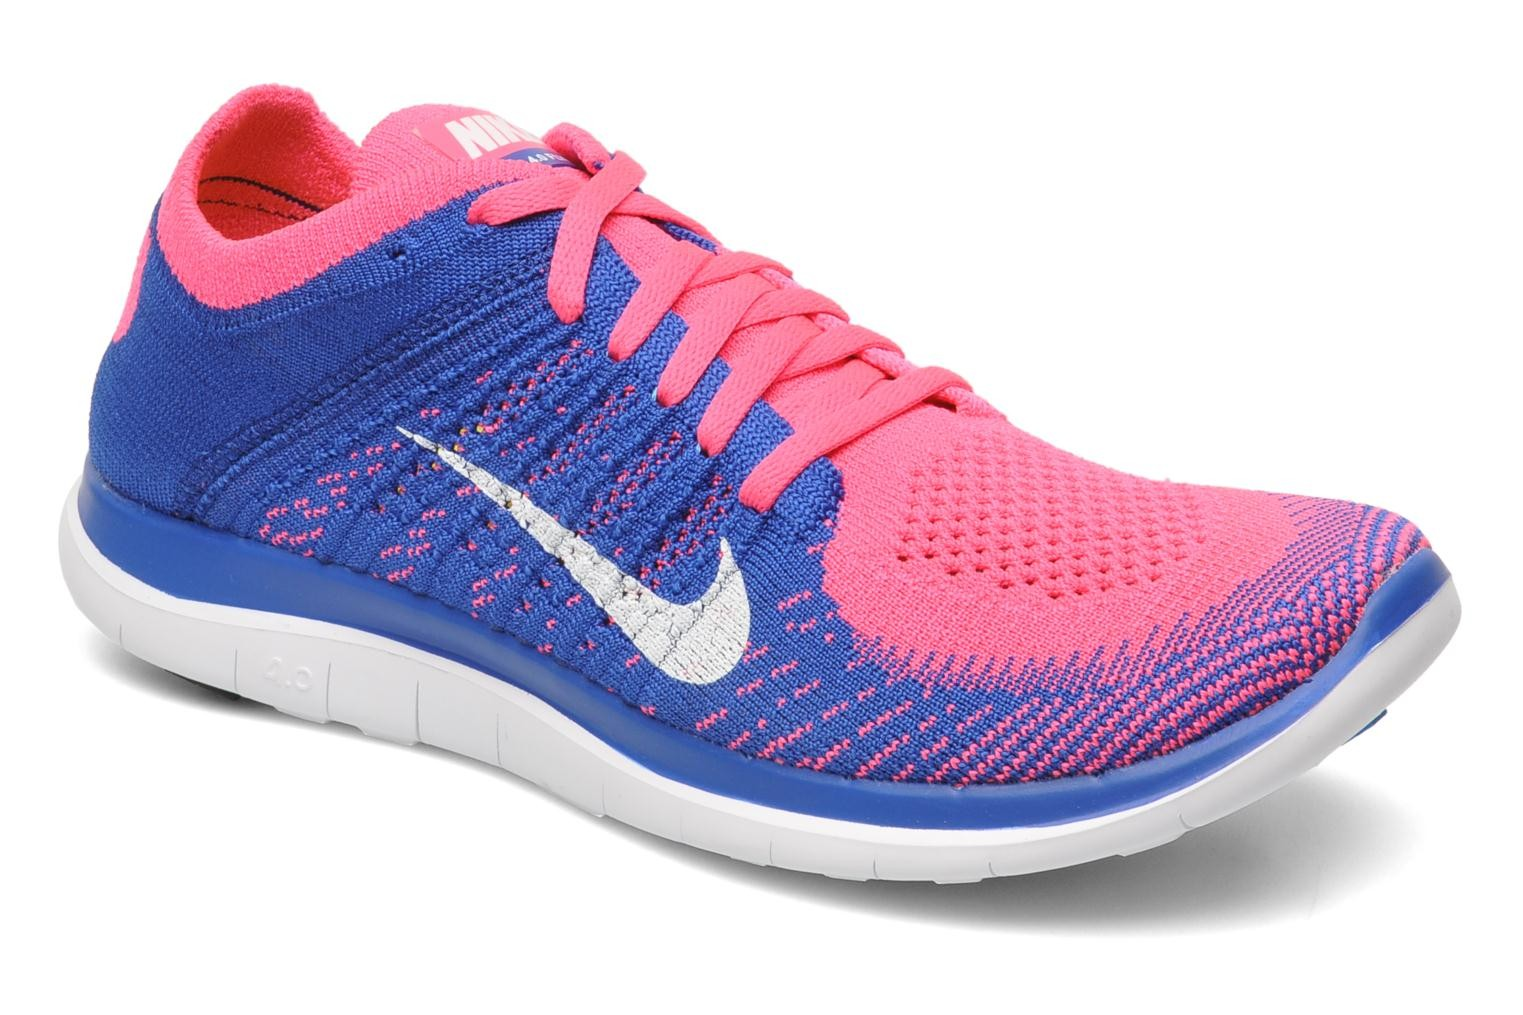 Nike WMNS Free 4.0 Flyknit Pink Flash/White-Game Royal Women's Running Shoe